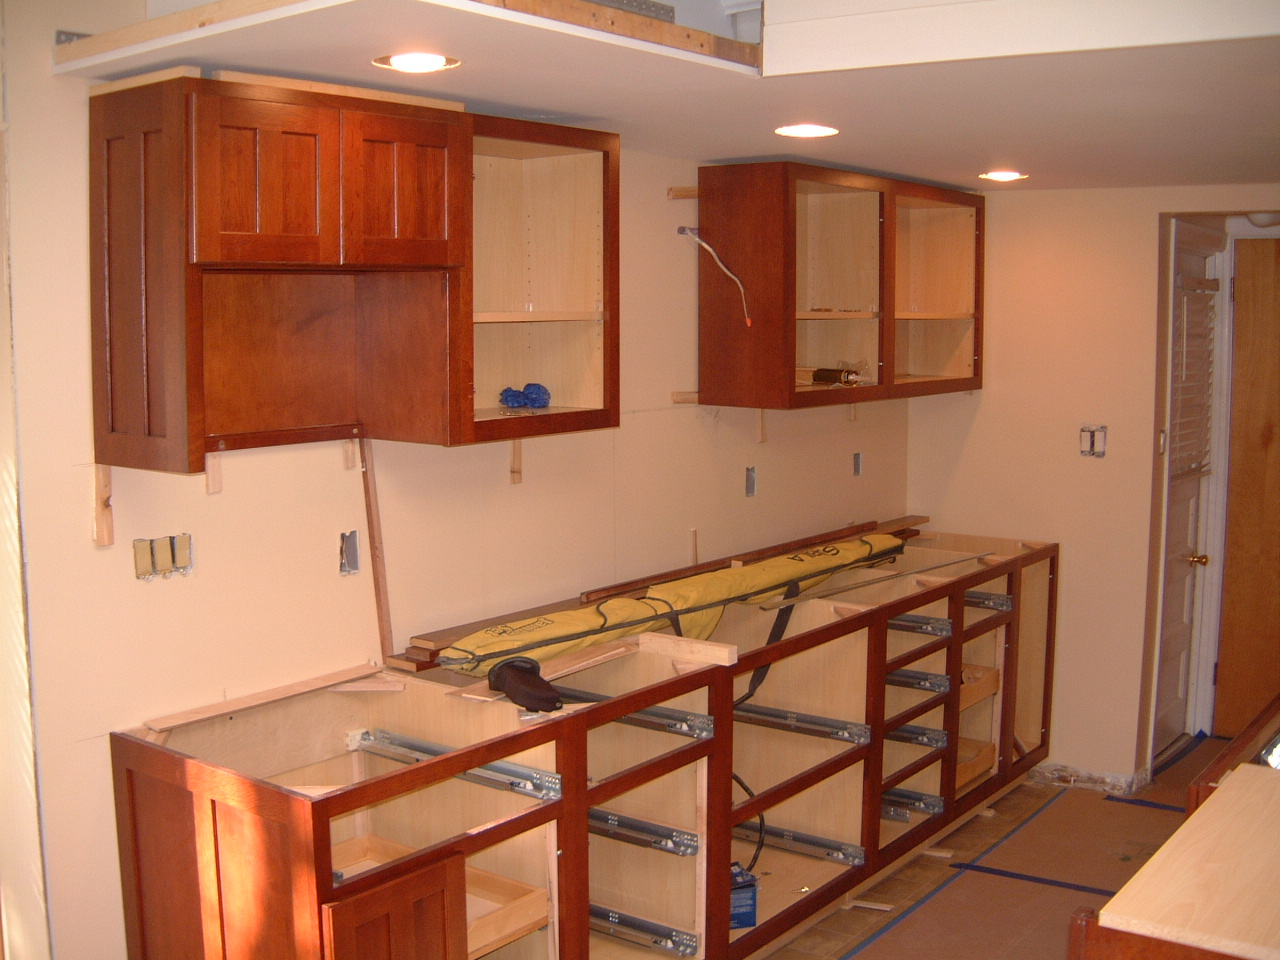 Installing New Kitchen Cabinets